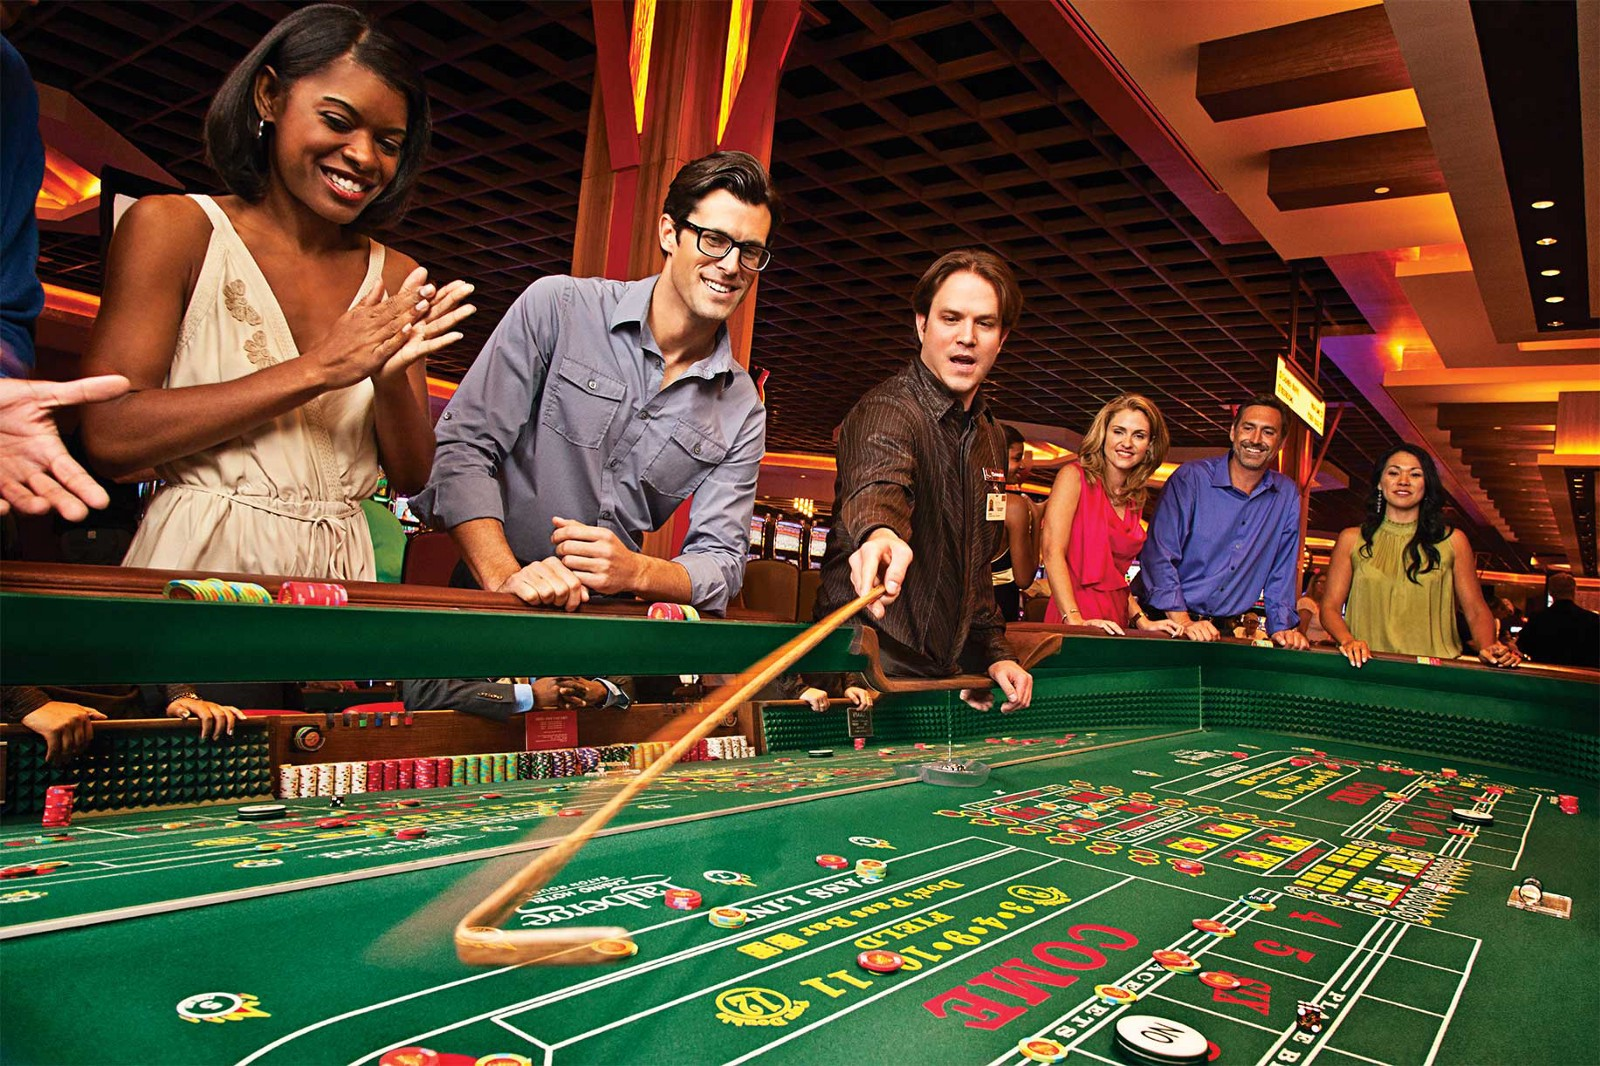 Play Poker Online and Have Fun For the Day